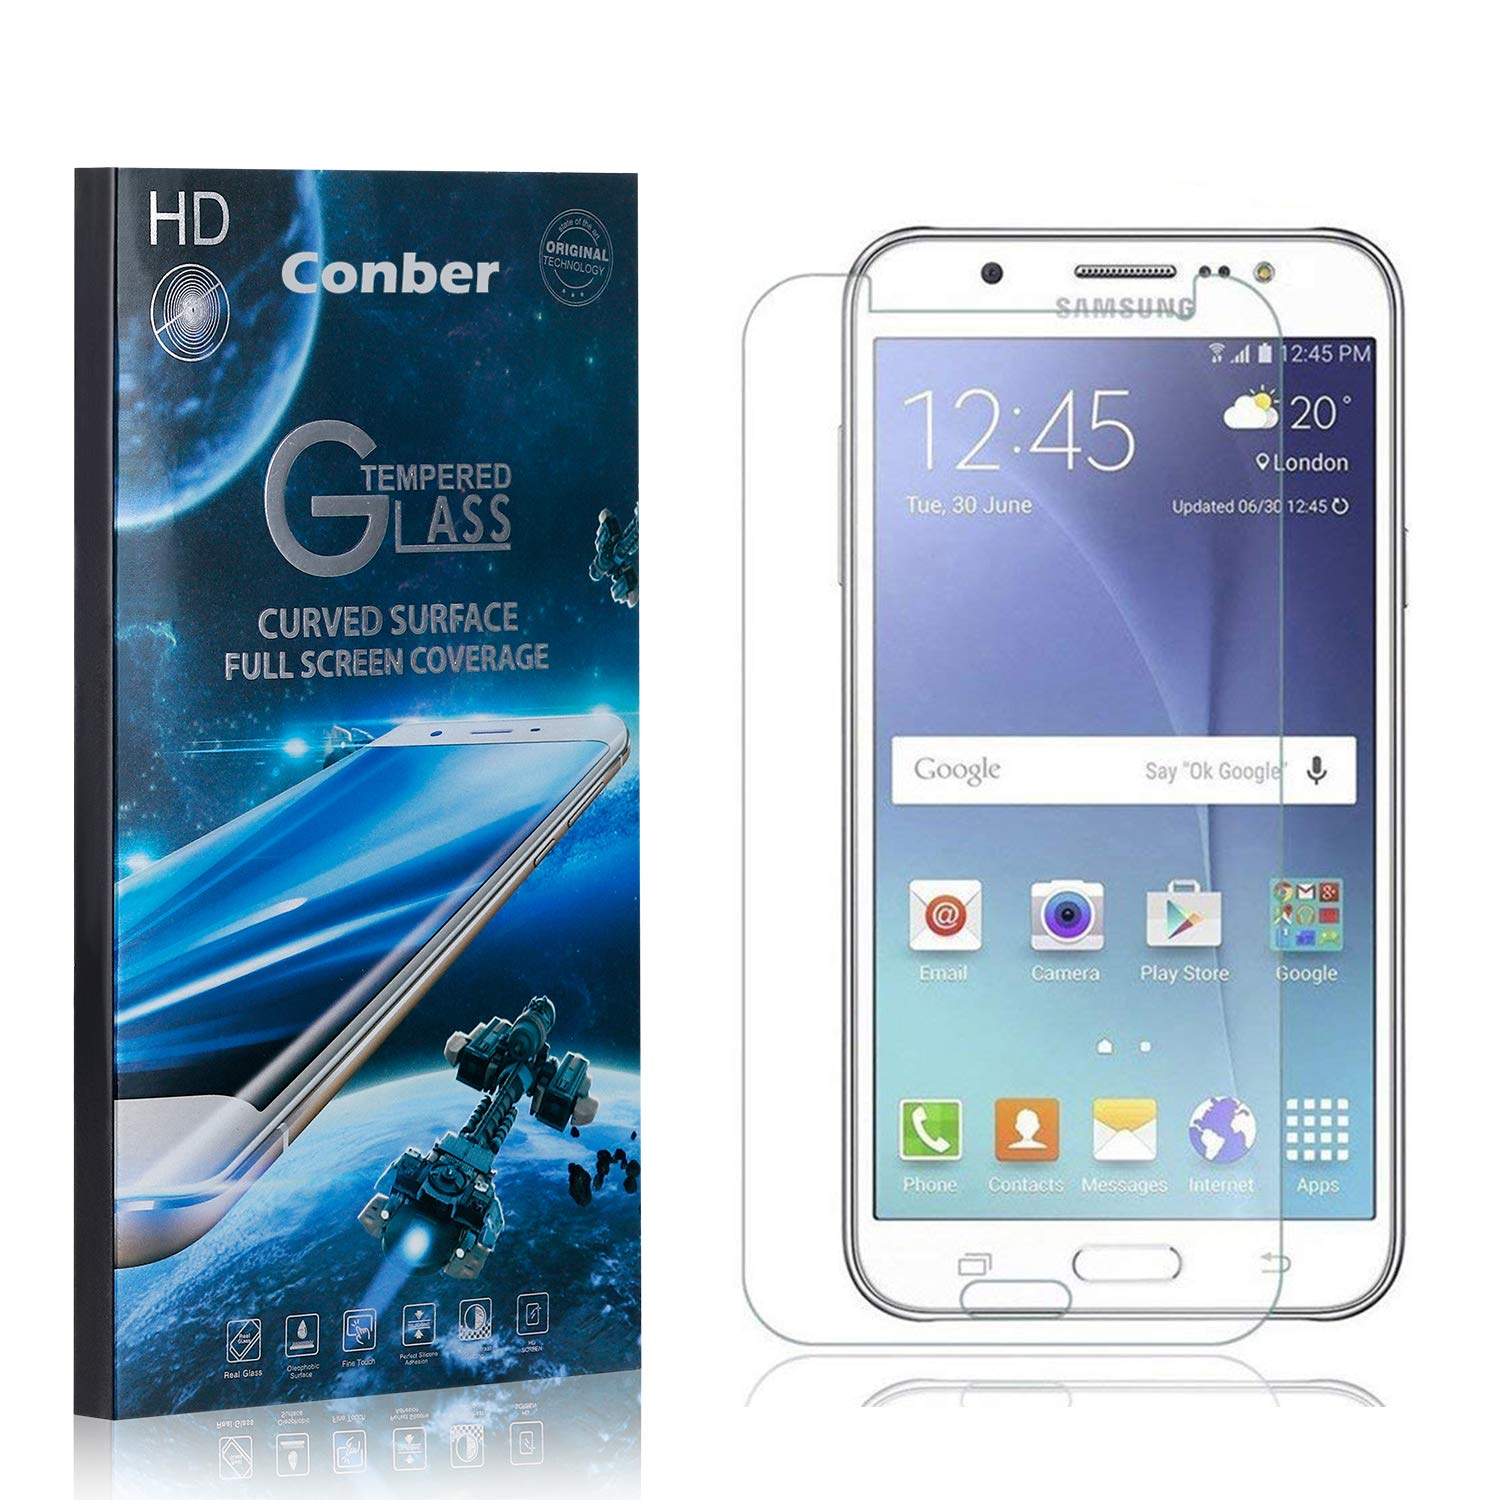 price Conber 1 Pack Screen Protector for J7 Sc Galaxy Samsung 2016 Limited price